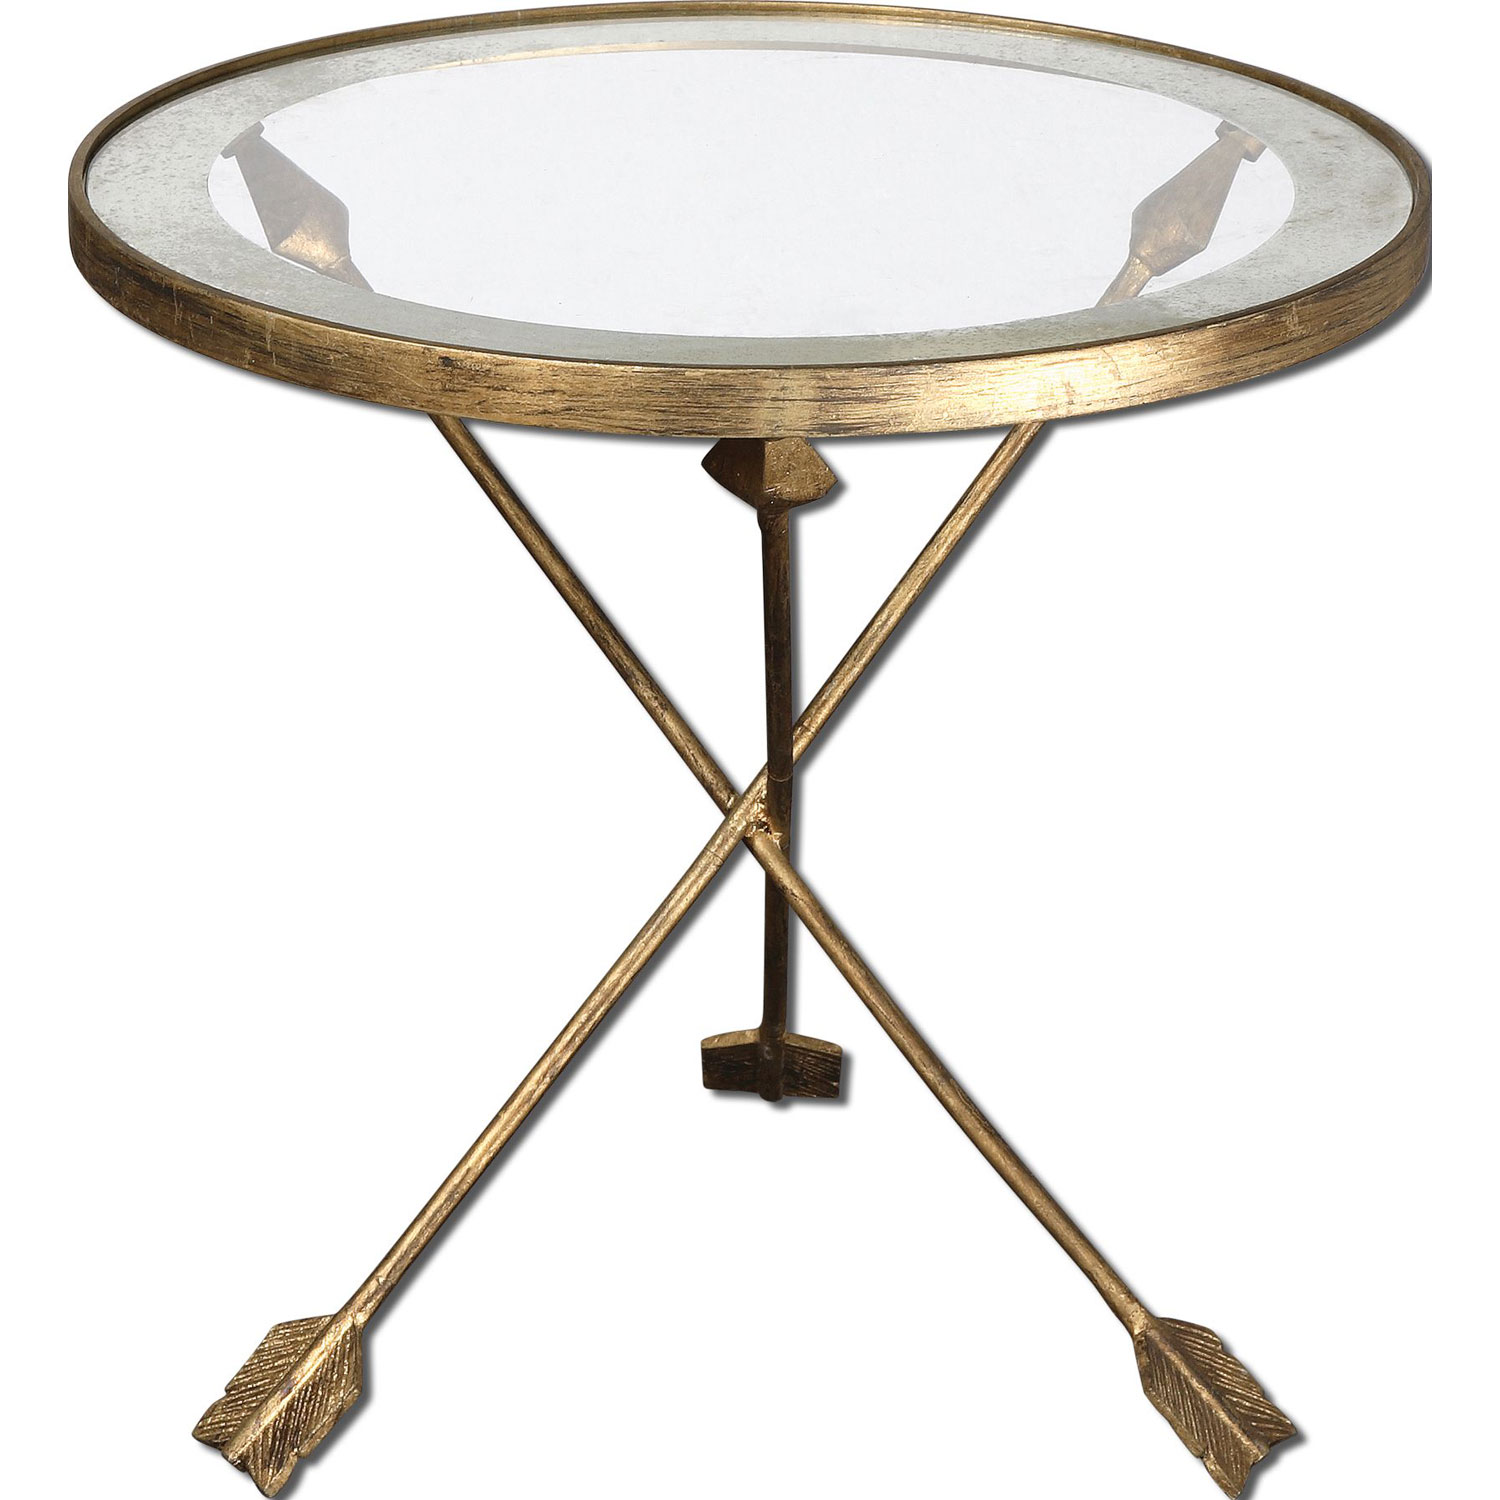 uttermost gold aero accent table bellacor montrez hover zoom home ornaments tiffany lighting direct ikea side west elm stools sofa with drawer making coffee glass pendant lights